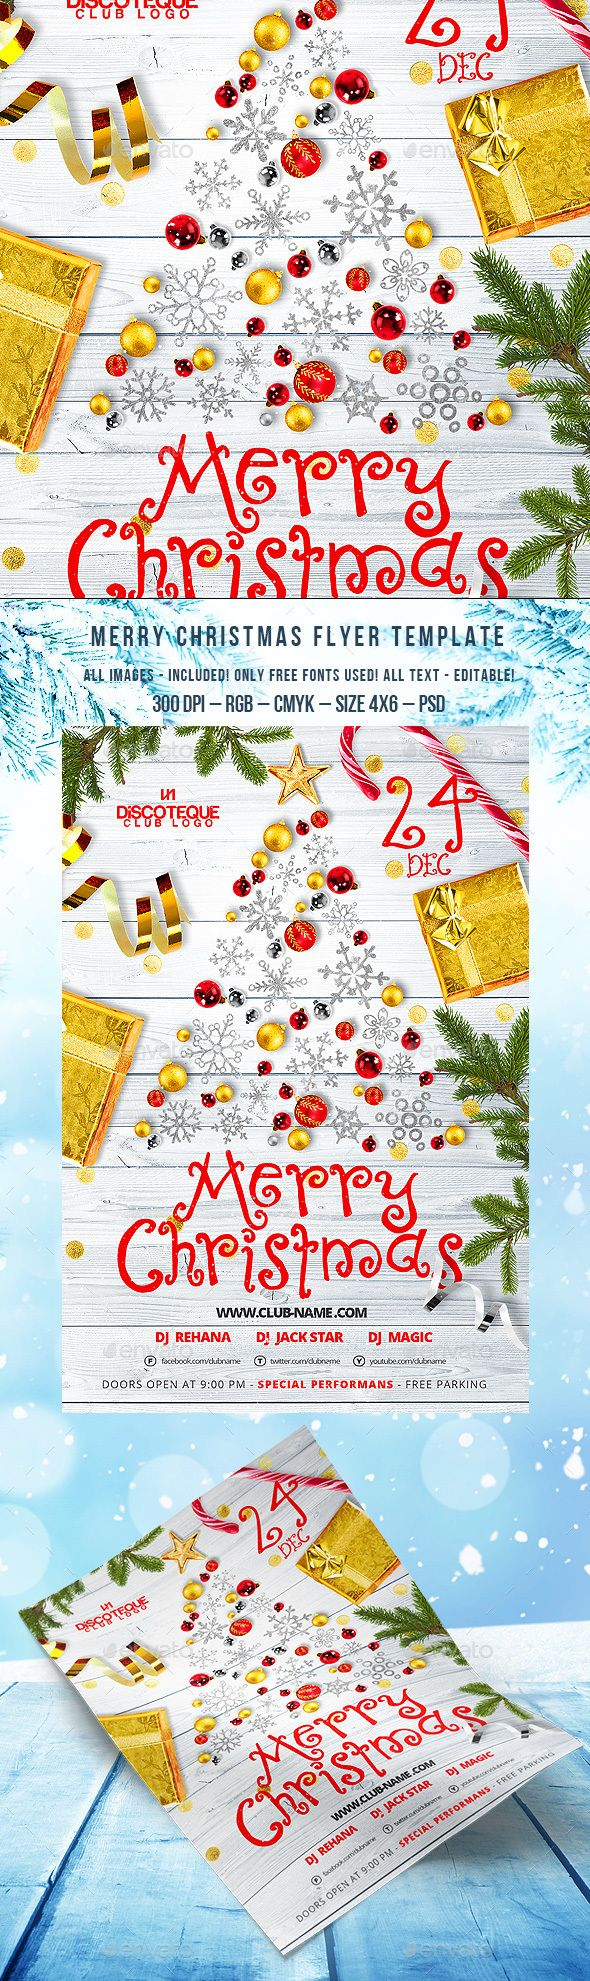 154 best ideas about best club flyers christmas christmas party